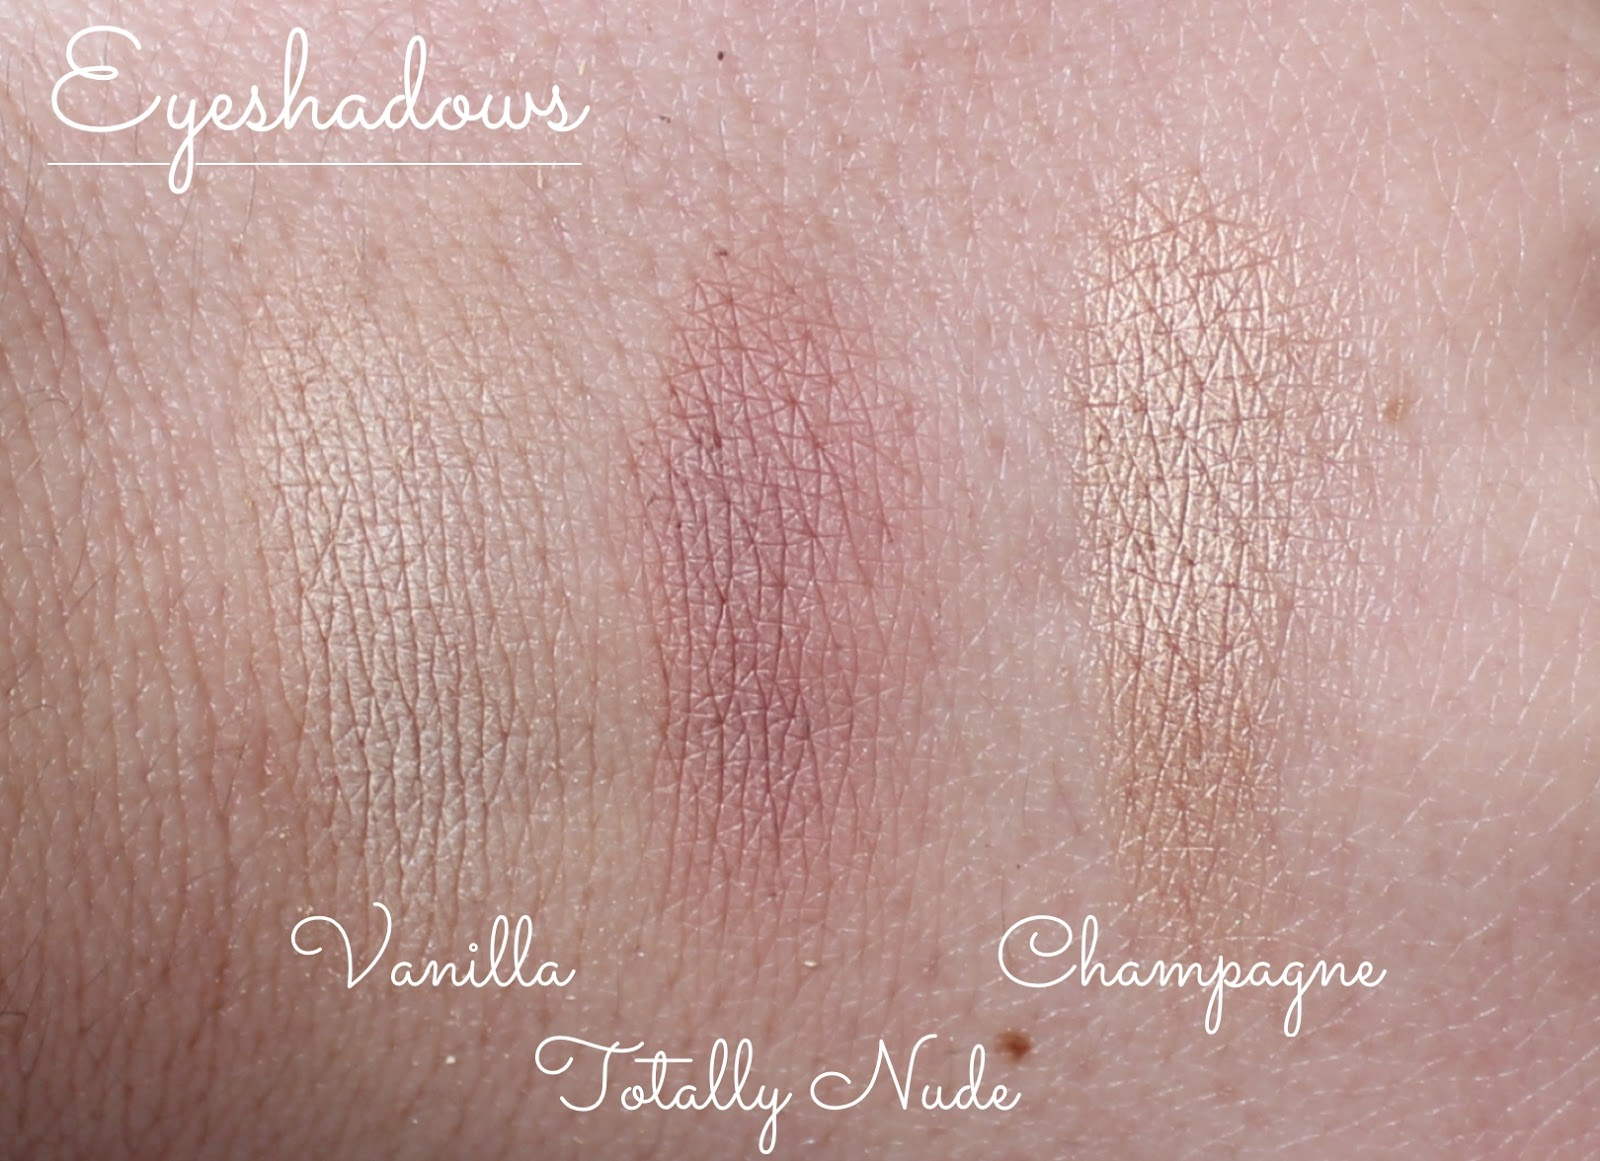 smashbox shapematters palette eyeshadow swatch